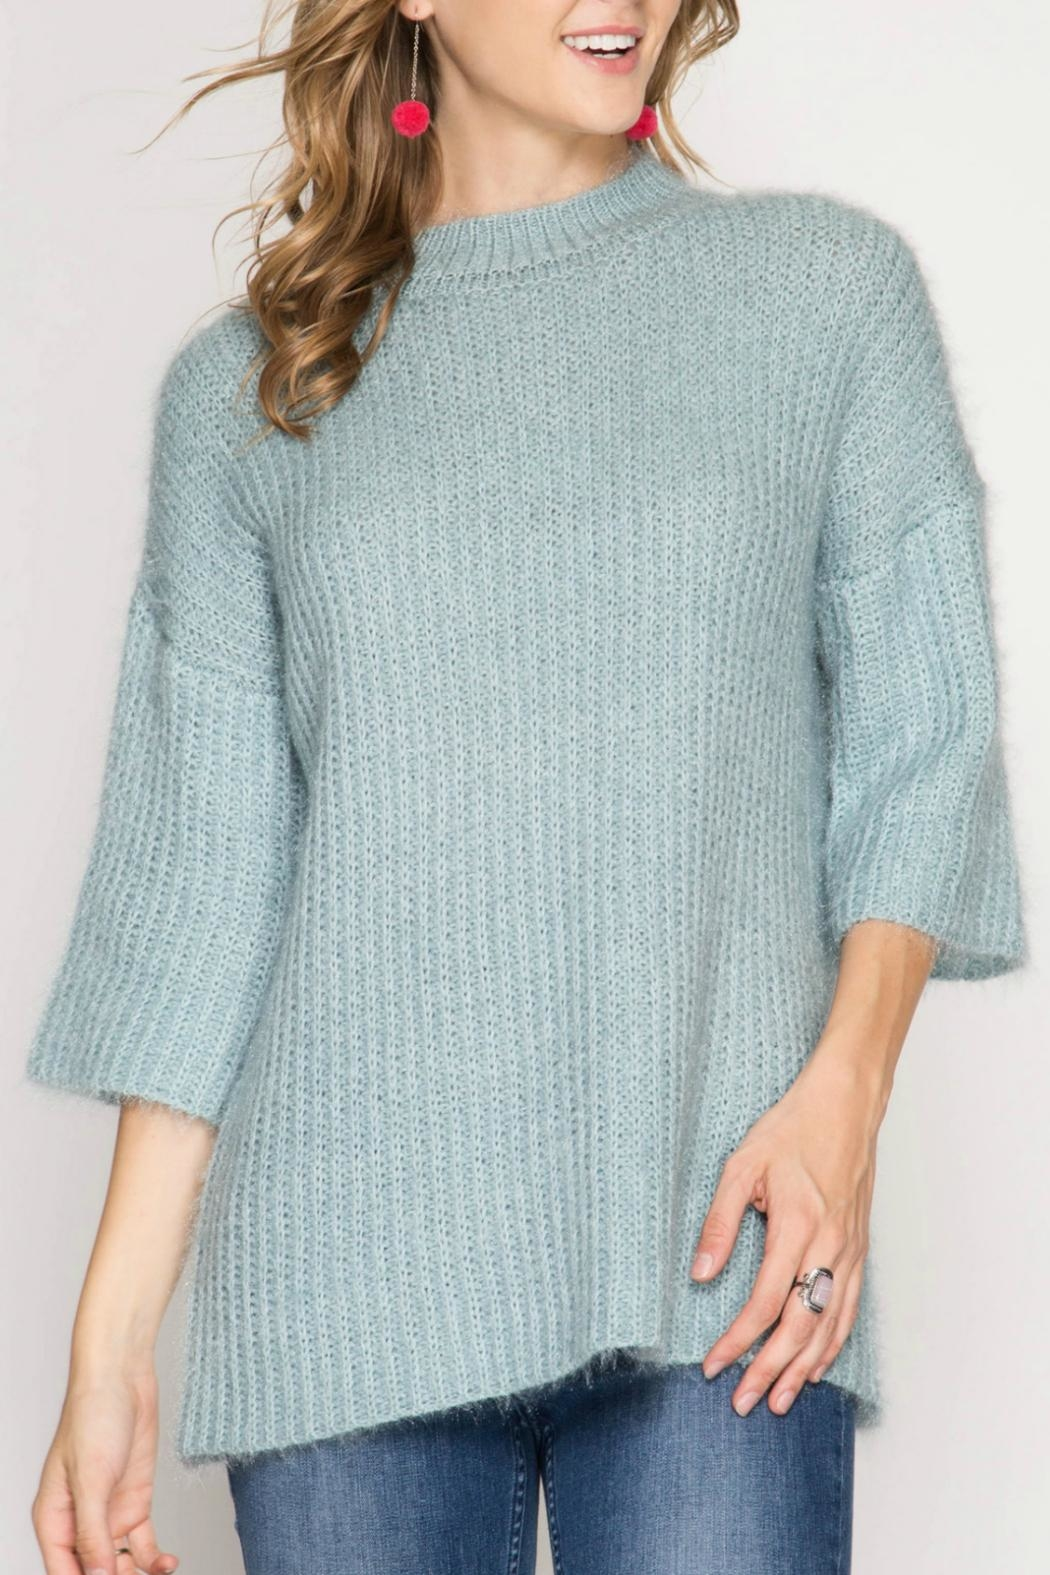 She + Sky Stacey Tunic Sweater - Main Image